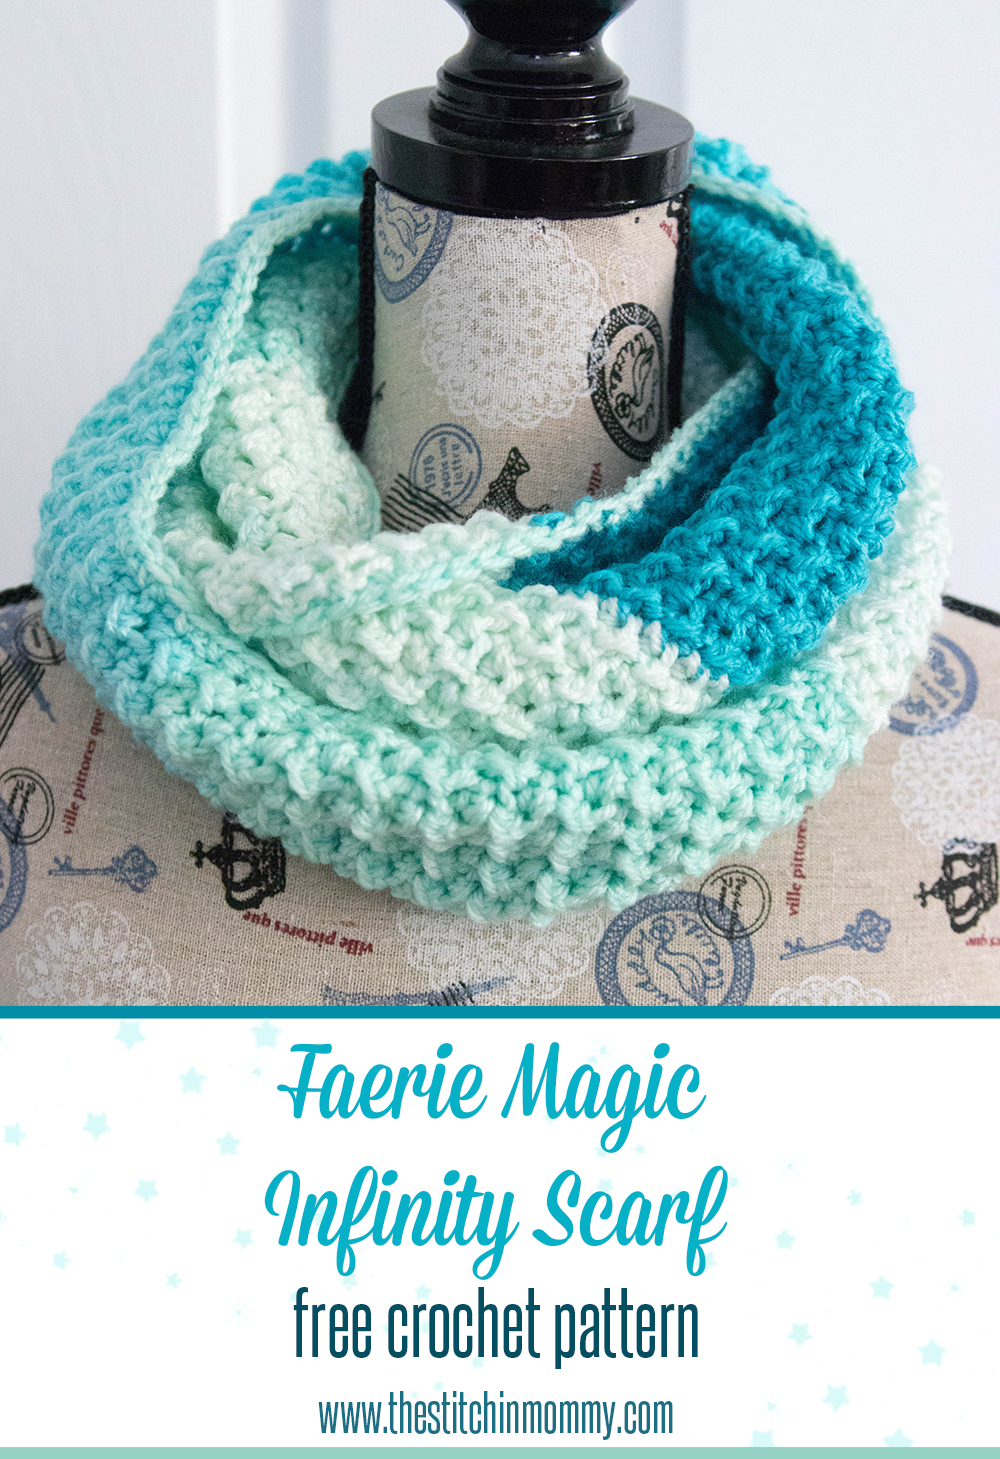 Faerie Magic Infinity Scarf - Free Crochet Pattern | Schal stricken ...